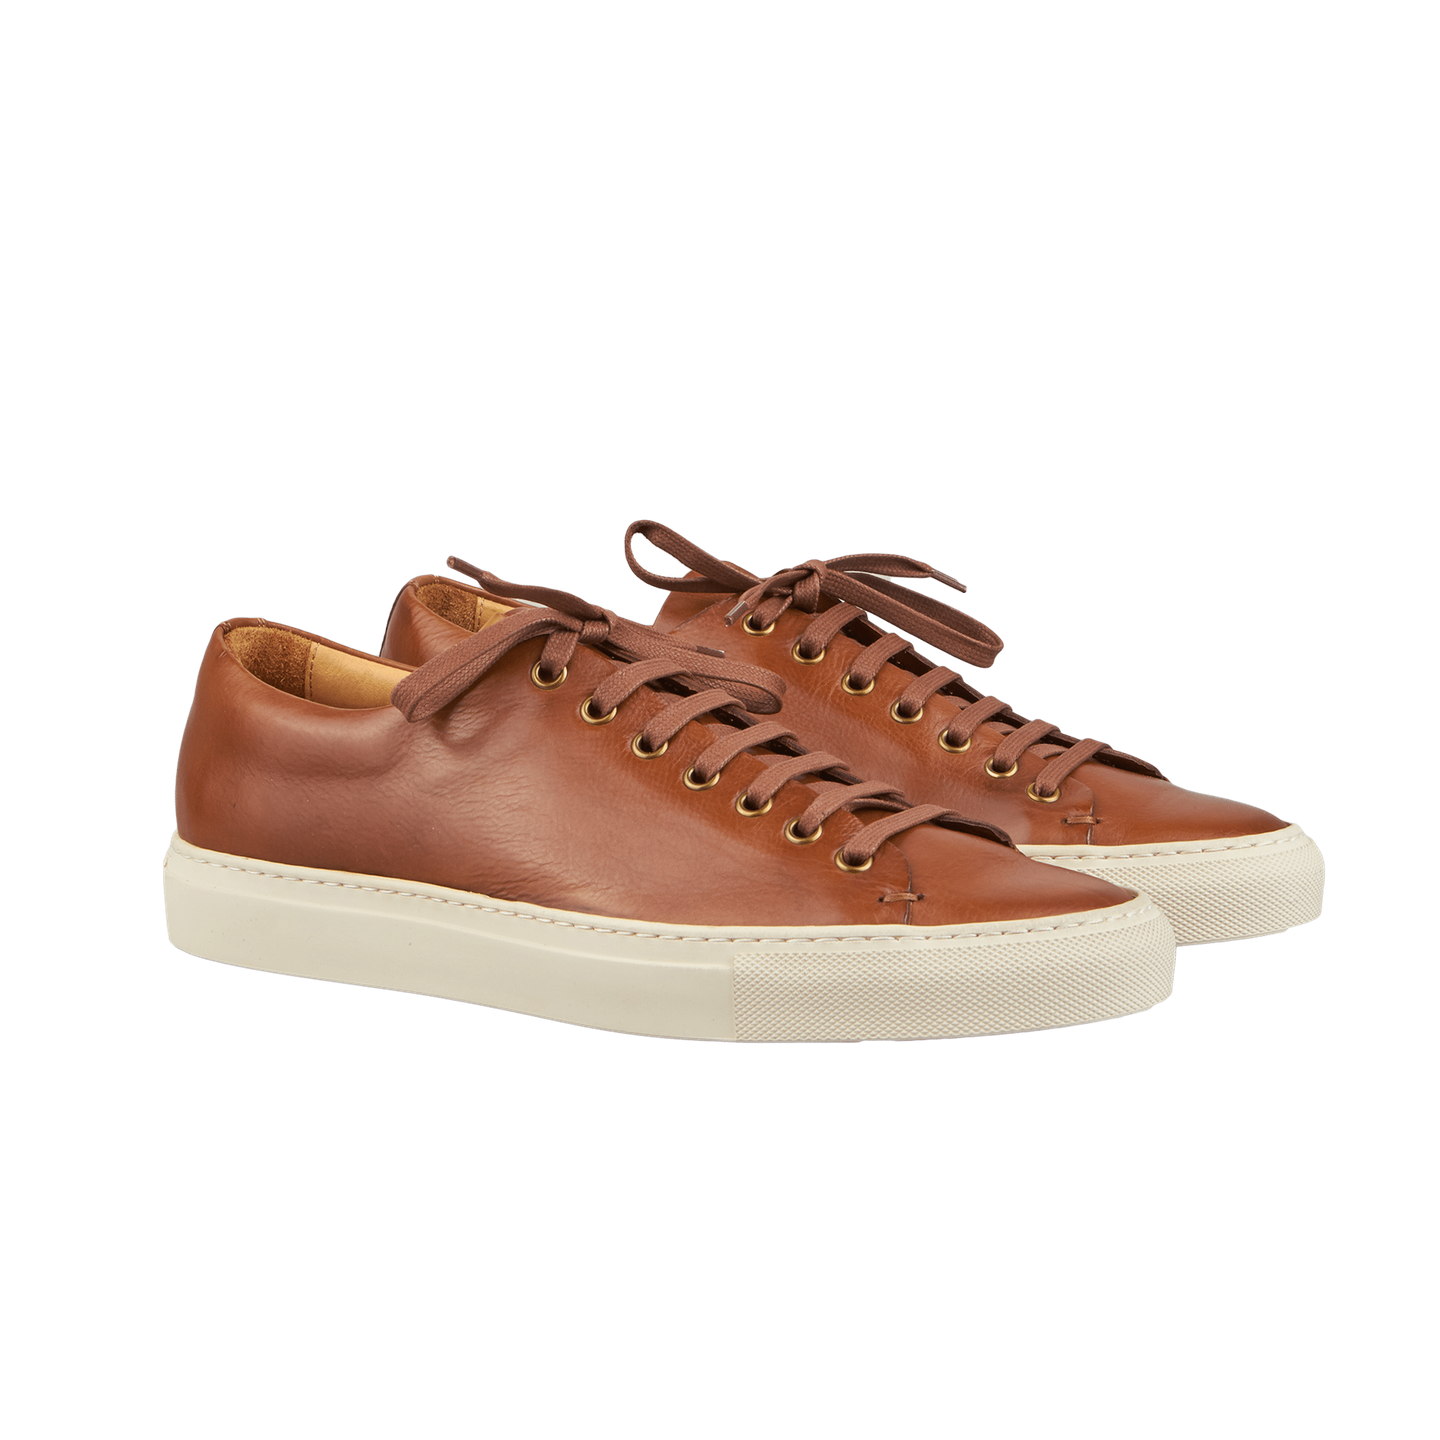 Chestnut Low Leather Sneakers